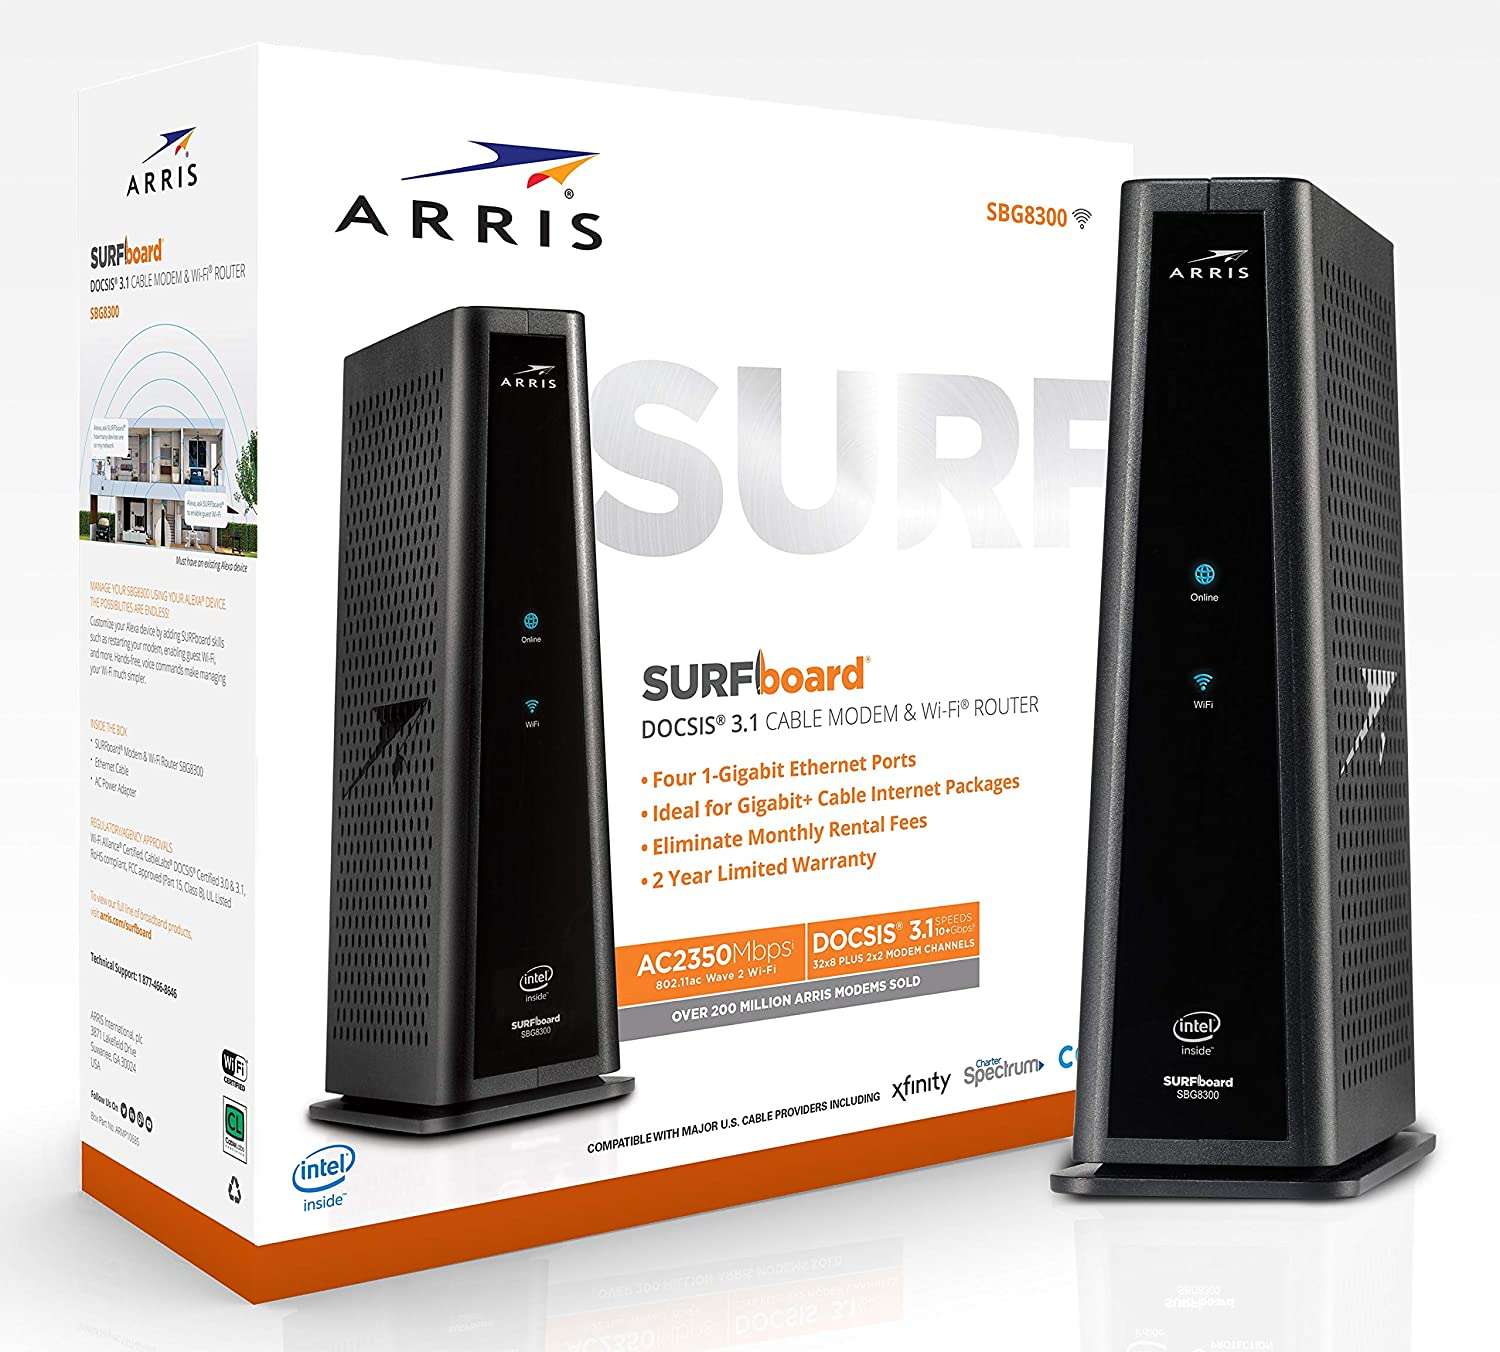 ARRIS SURFboard SBG8300 Best DOCSIS 3.1 Gigabit Cable Modem Router Combo & AC2350 Dual Band Wi-Fi Router, Approved For Cox, Spectrum, Xfinity & Others